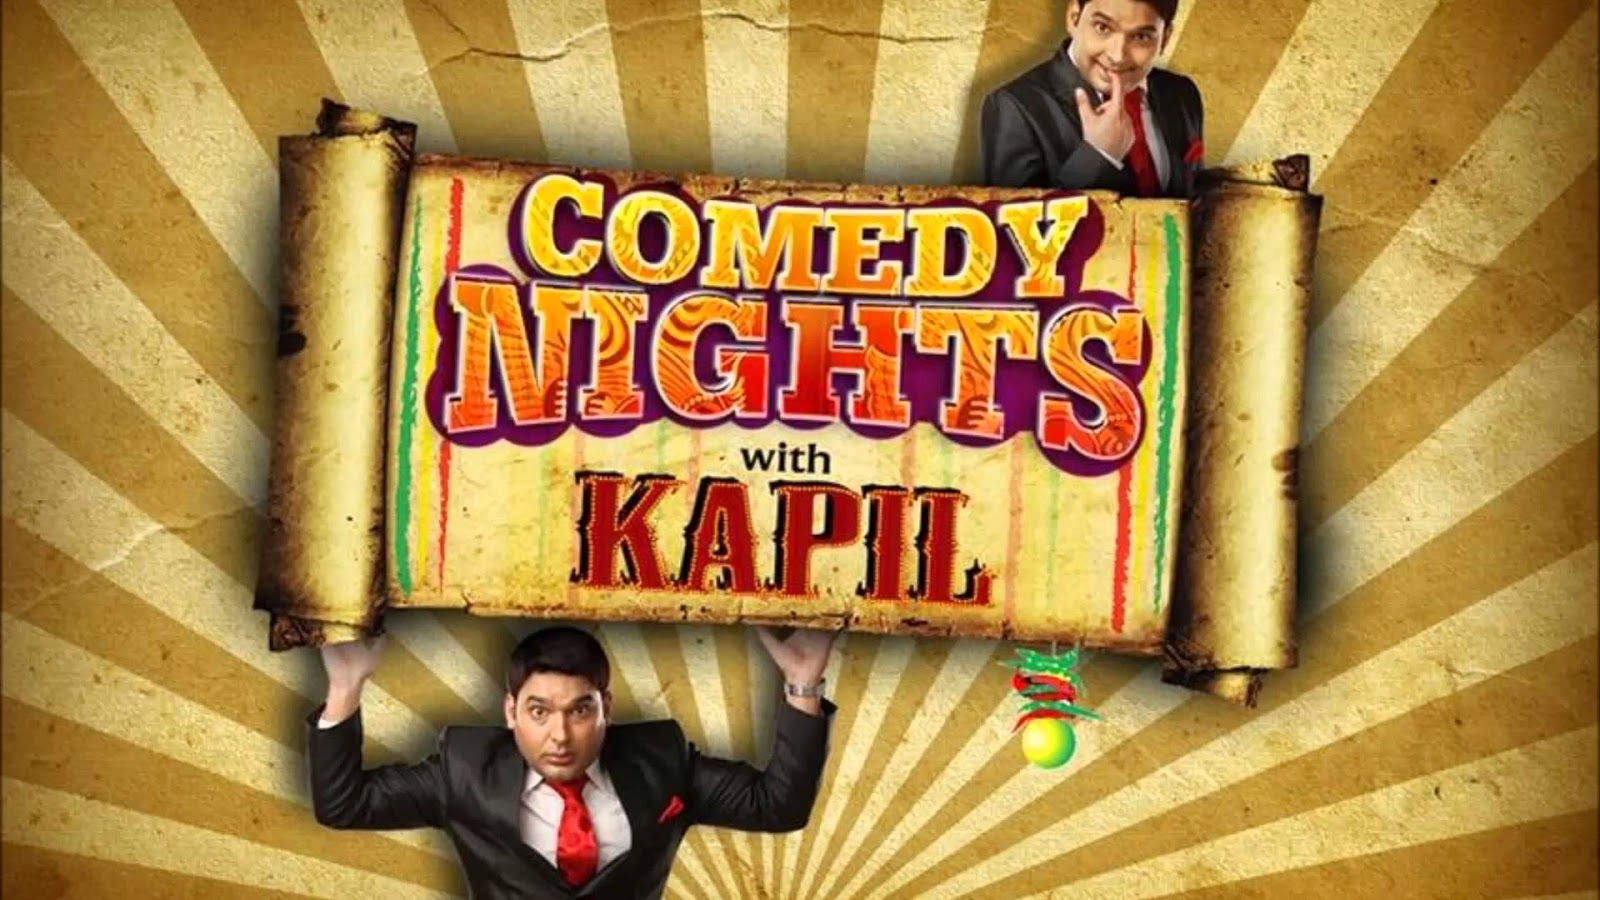 comedy nights with kapil poster tv show hd wallpaper photos download